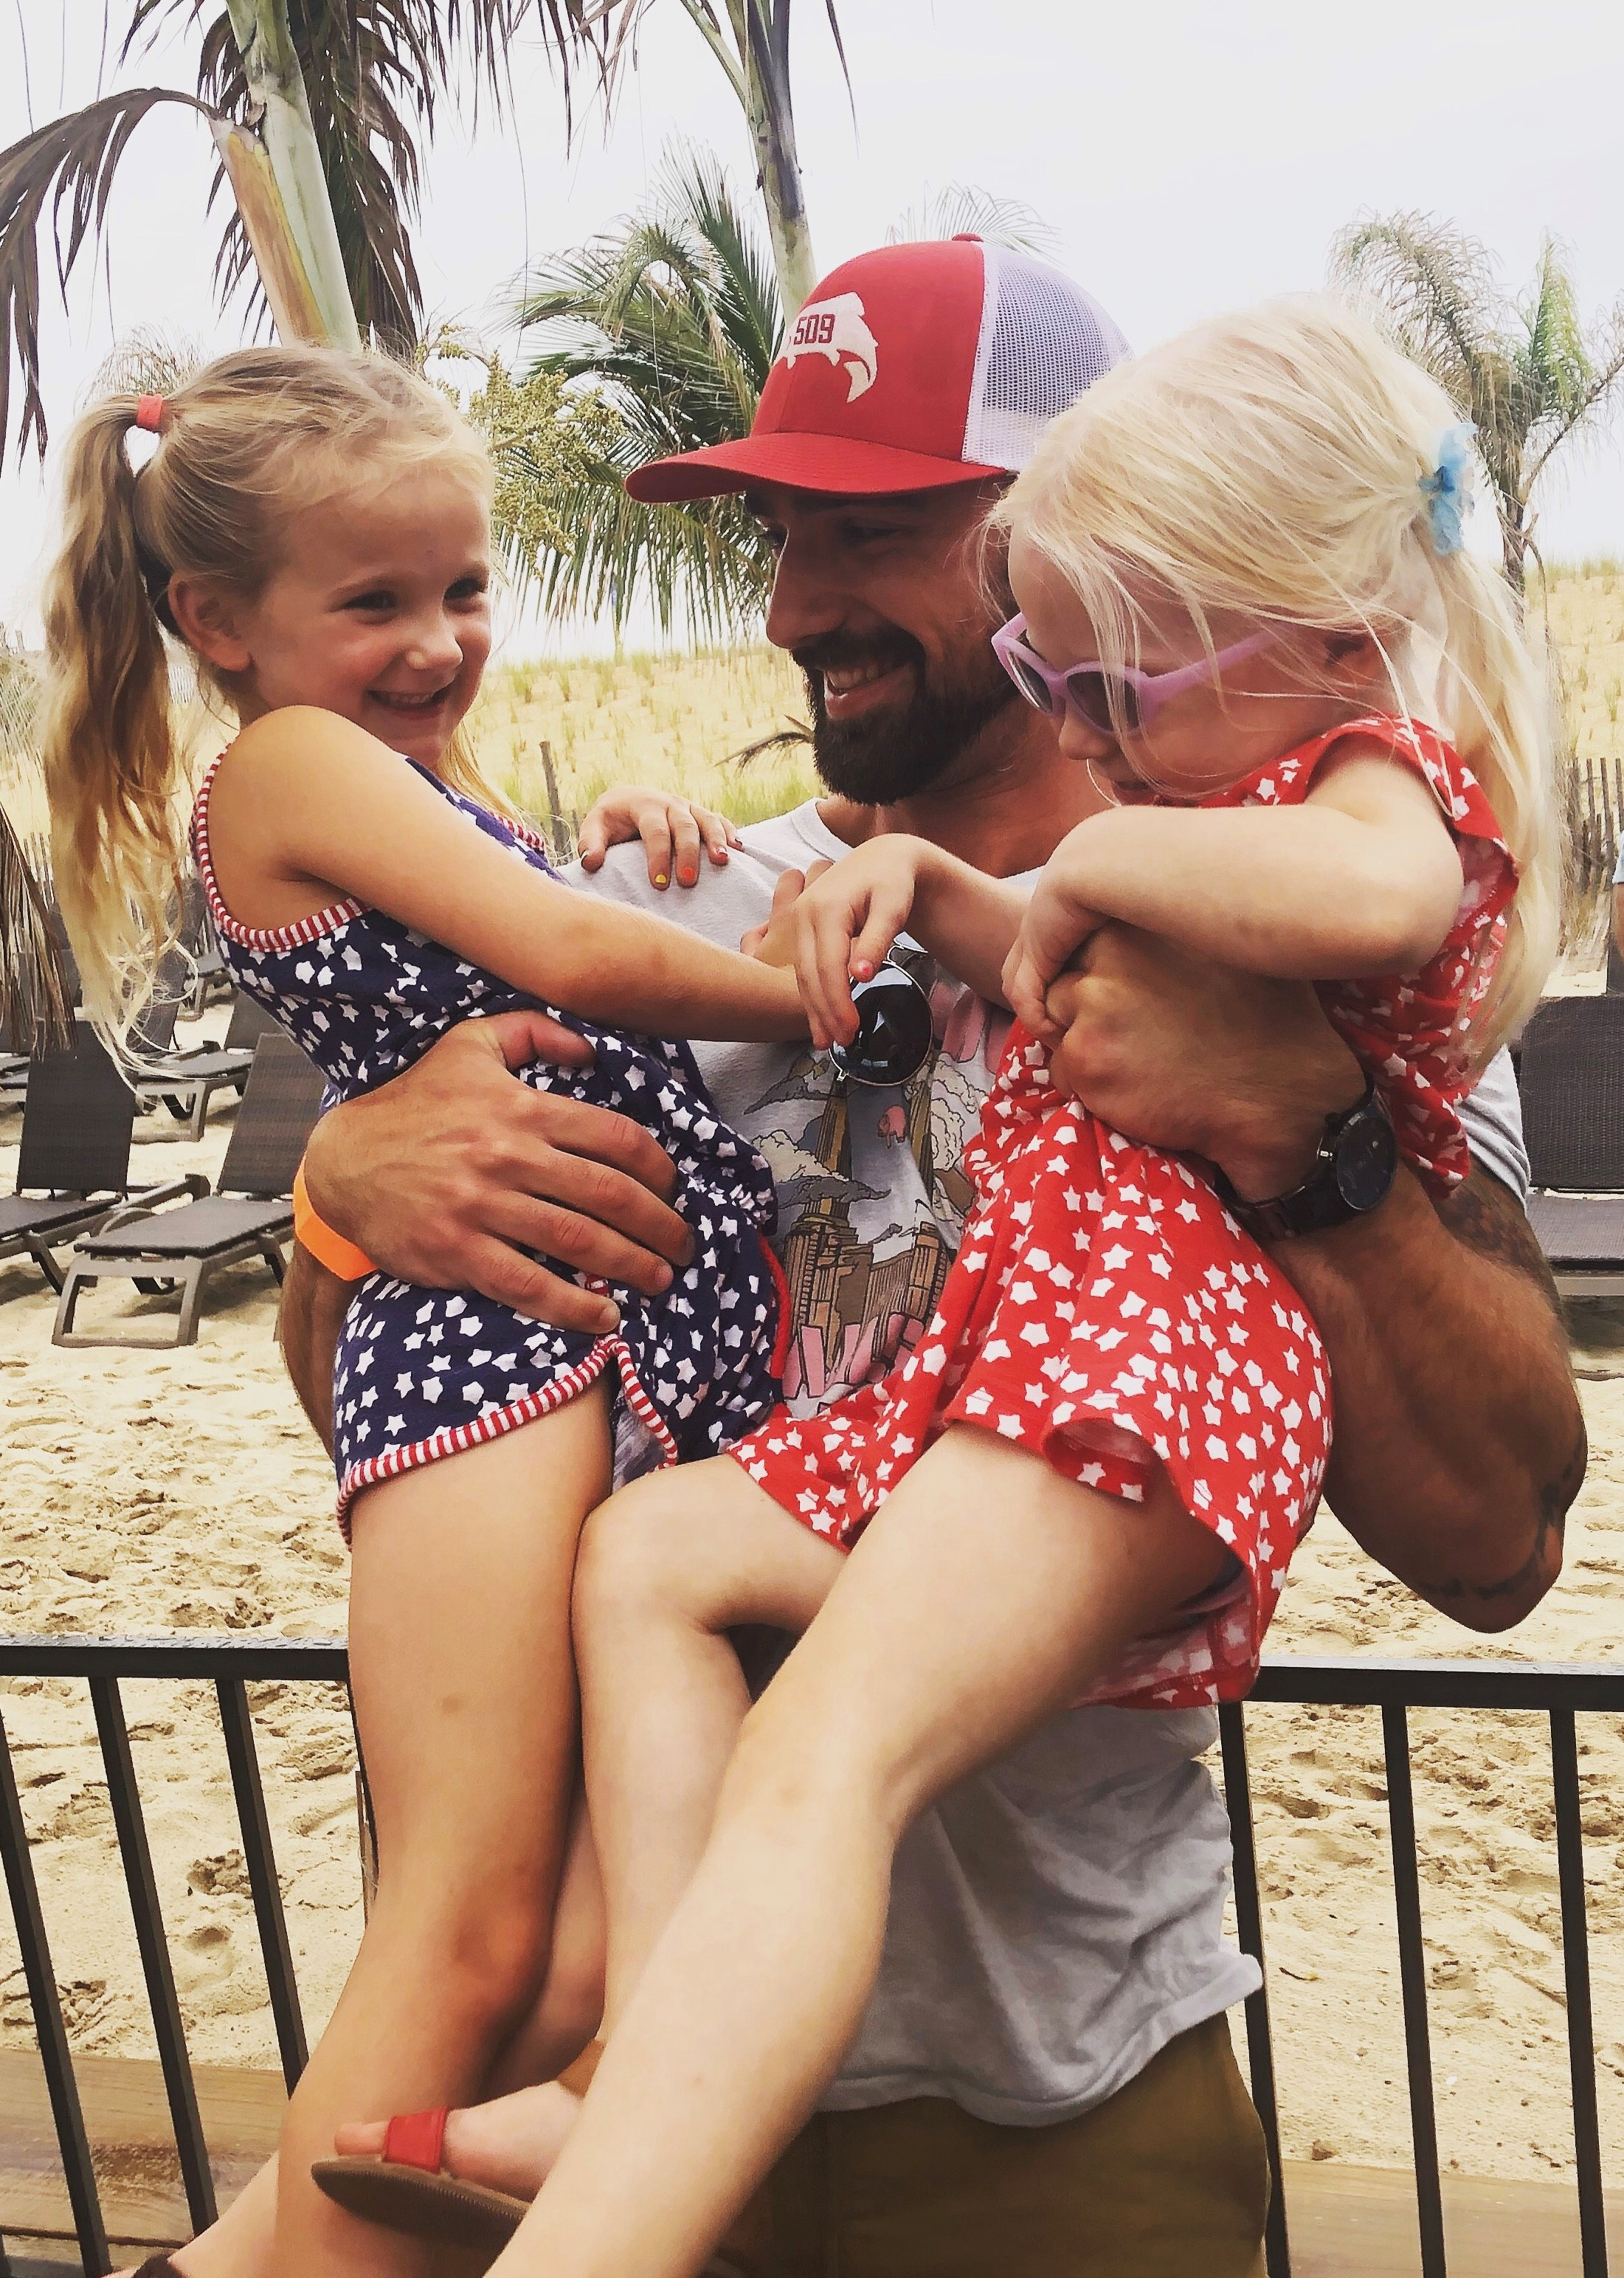 Derek Kimmerle is a customer success manager at Populus Group. He is pictured here with his two nieces.